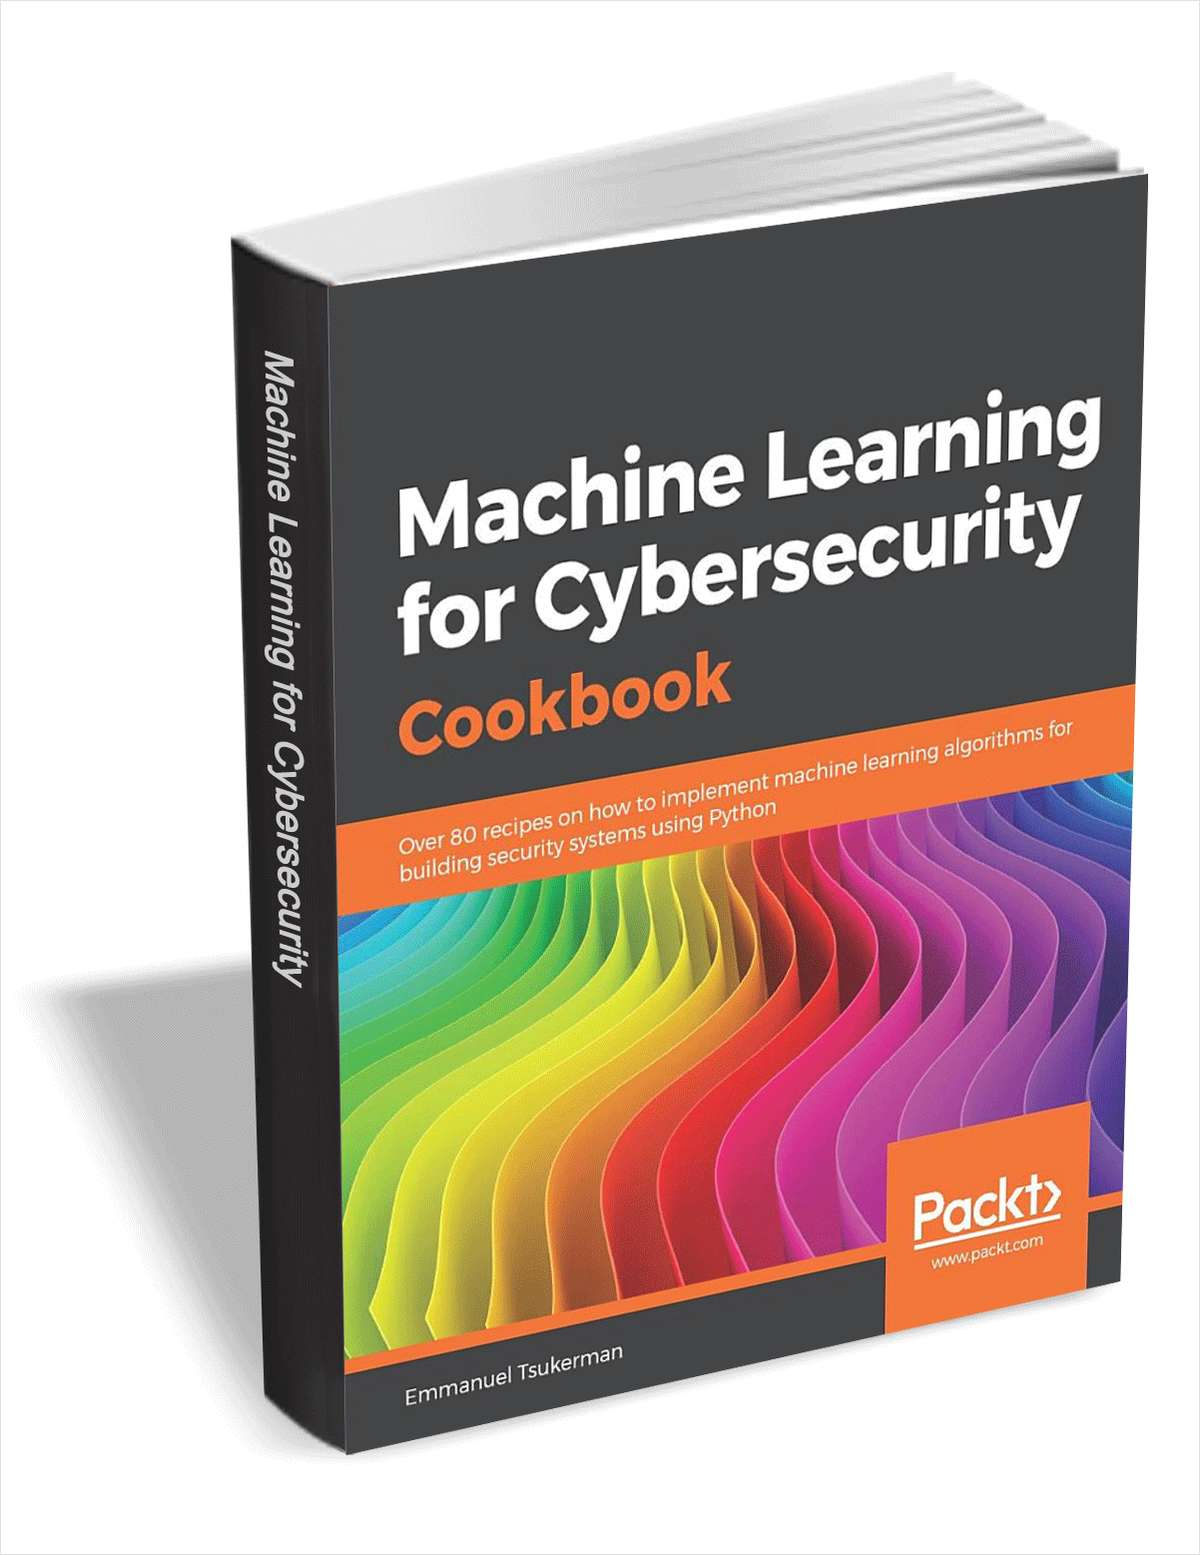 Machine Learning for Cybersecurity Cookbook ($31.99 Value) FREE for a Limited Time